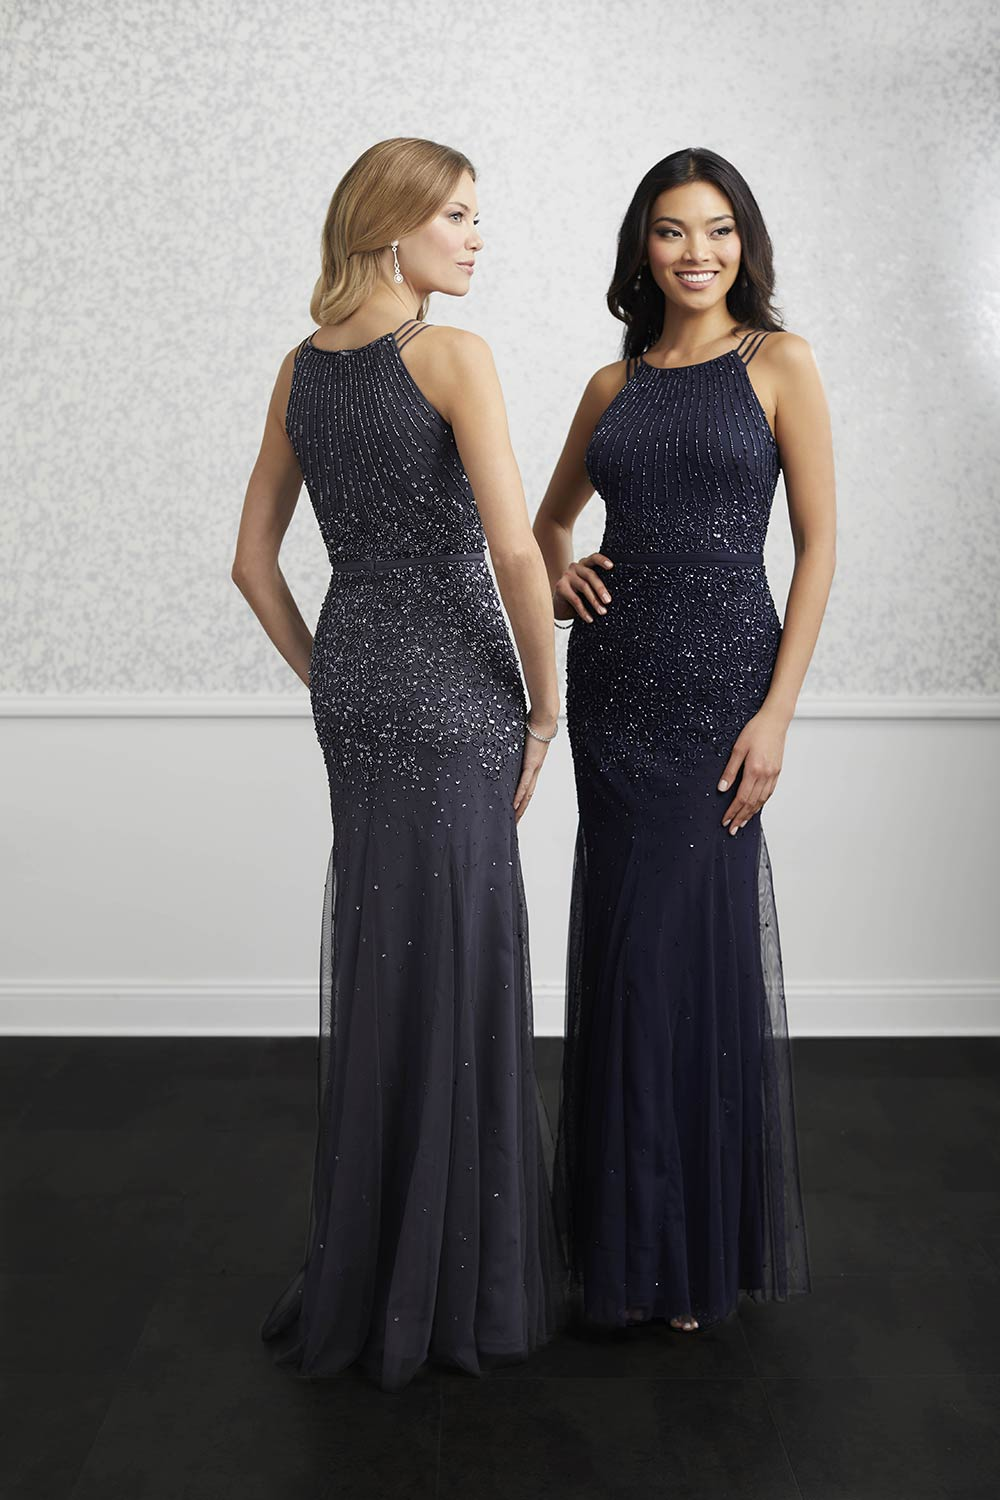 bridesmaid-dresses-jacquelin-bridals-canada-27414